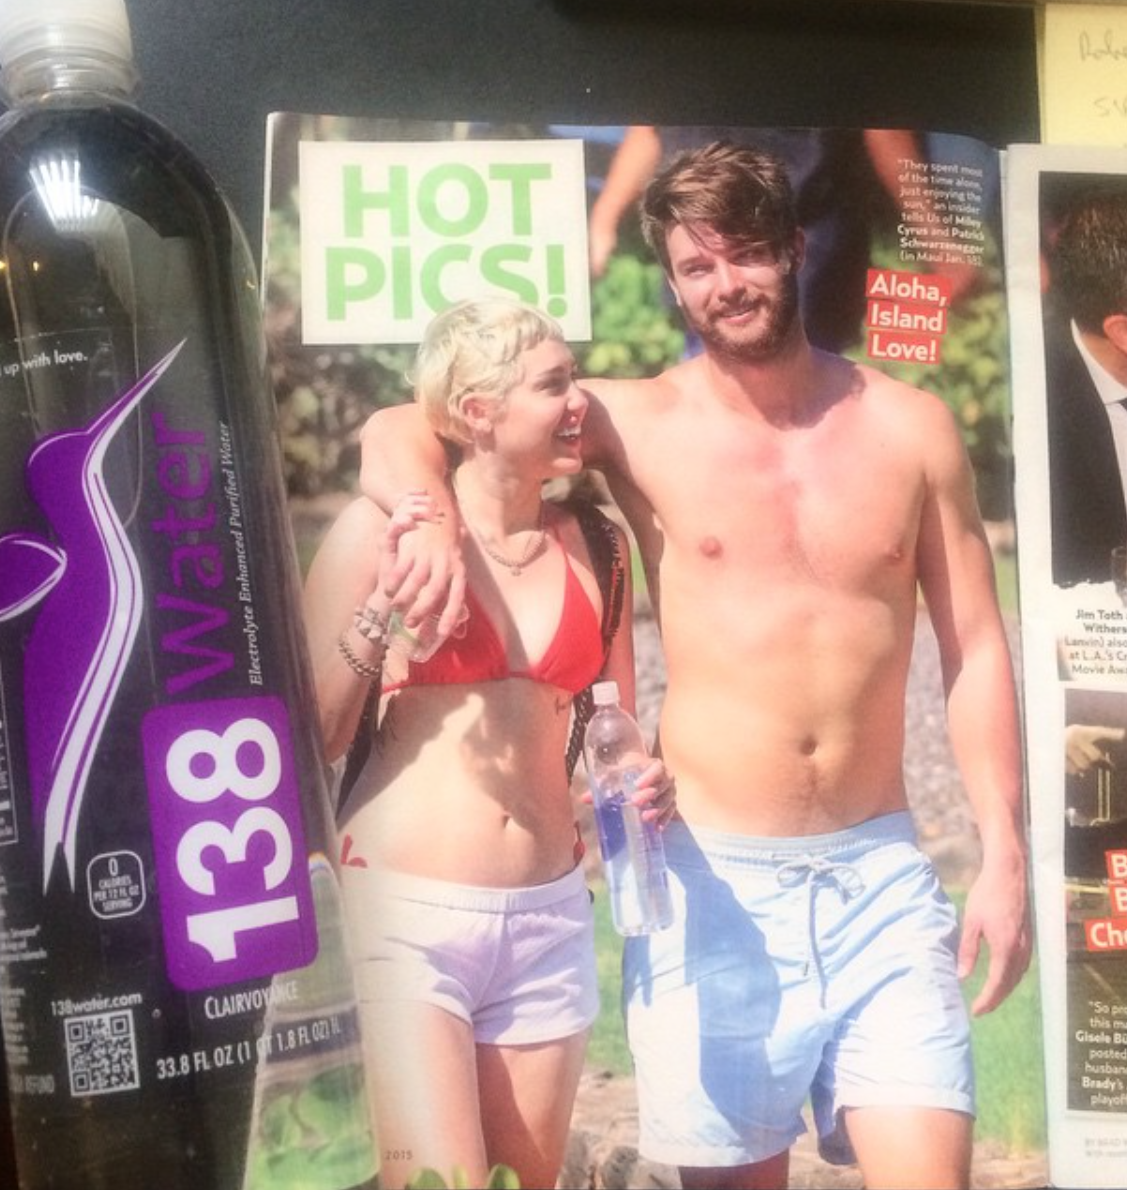 138 Water in US Weekly